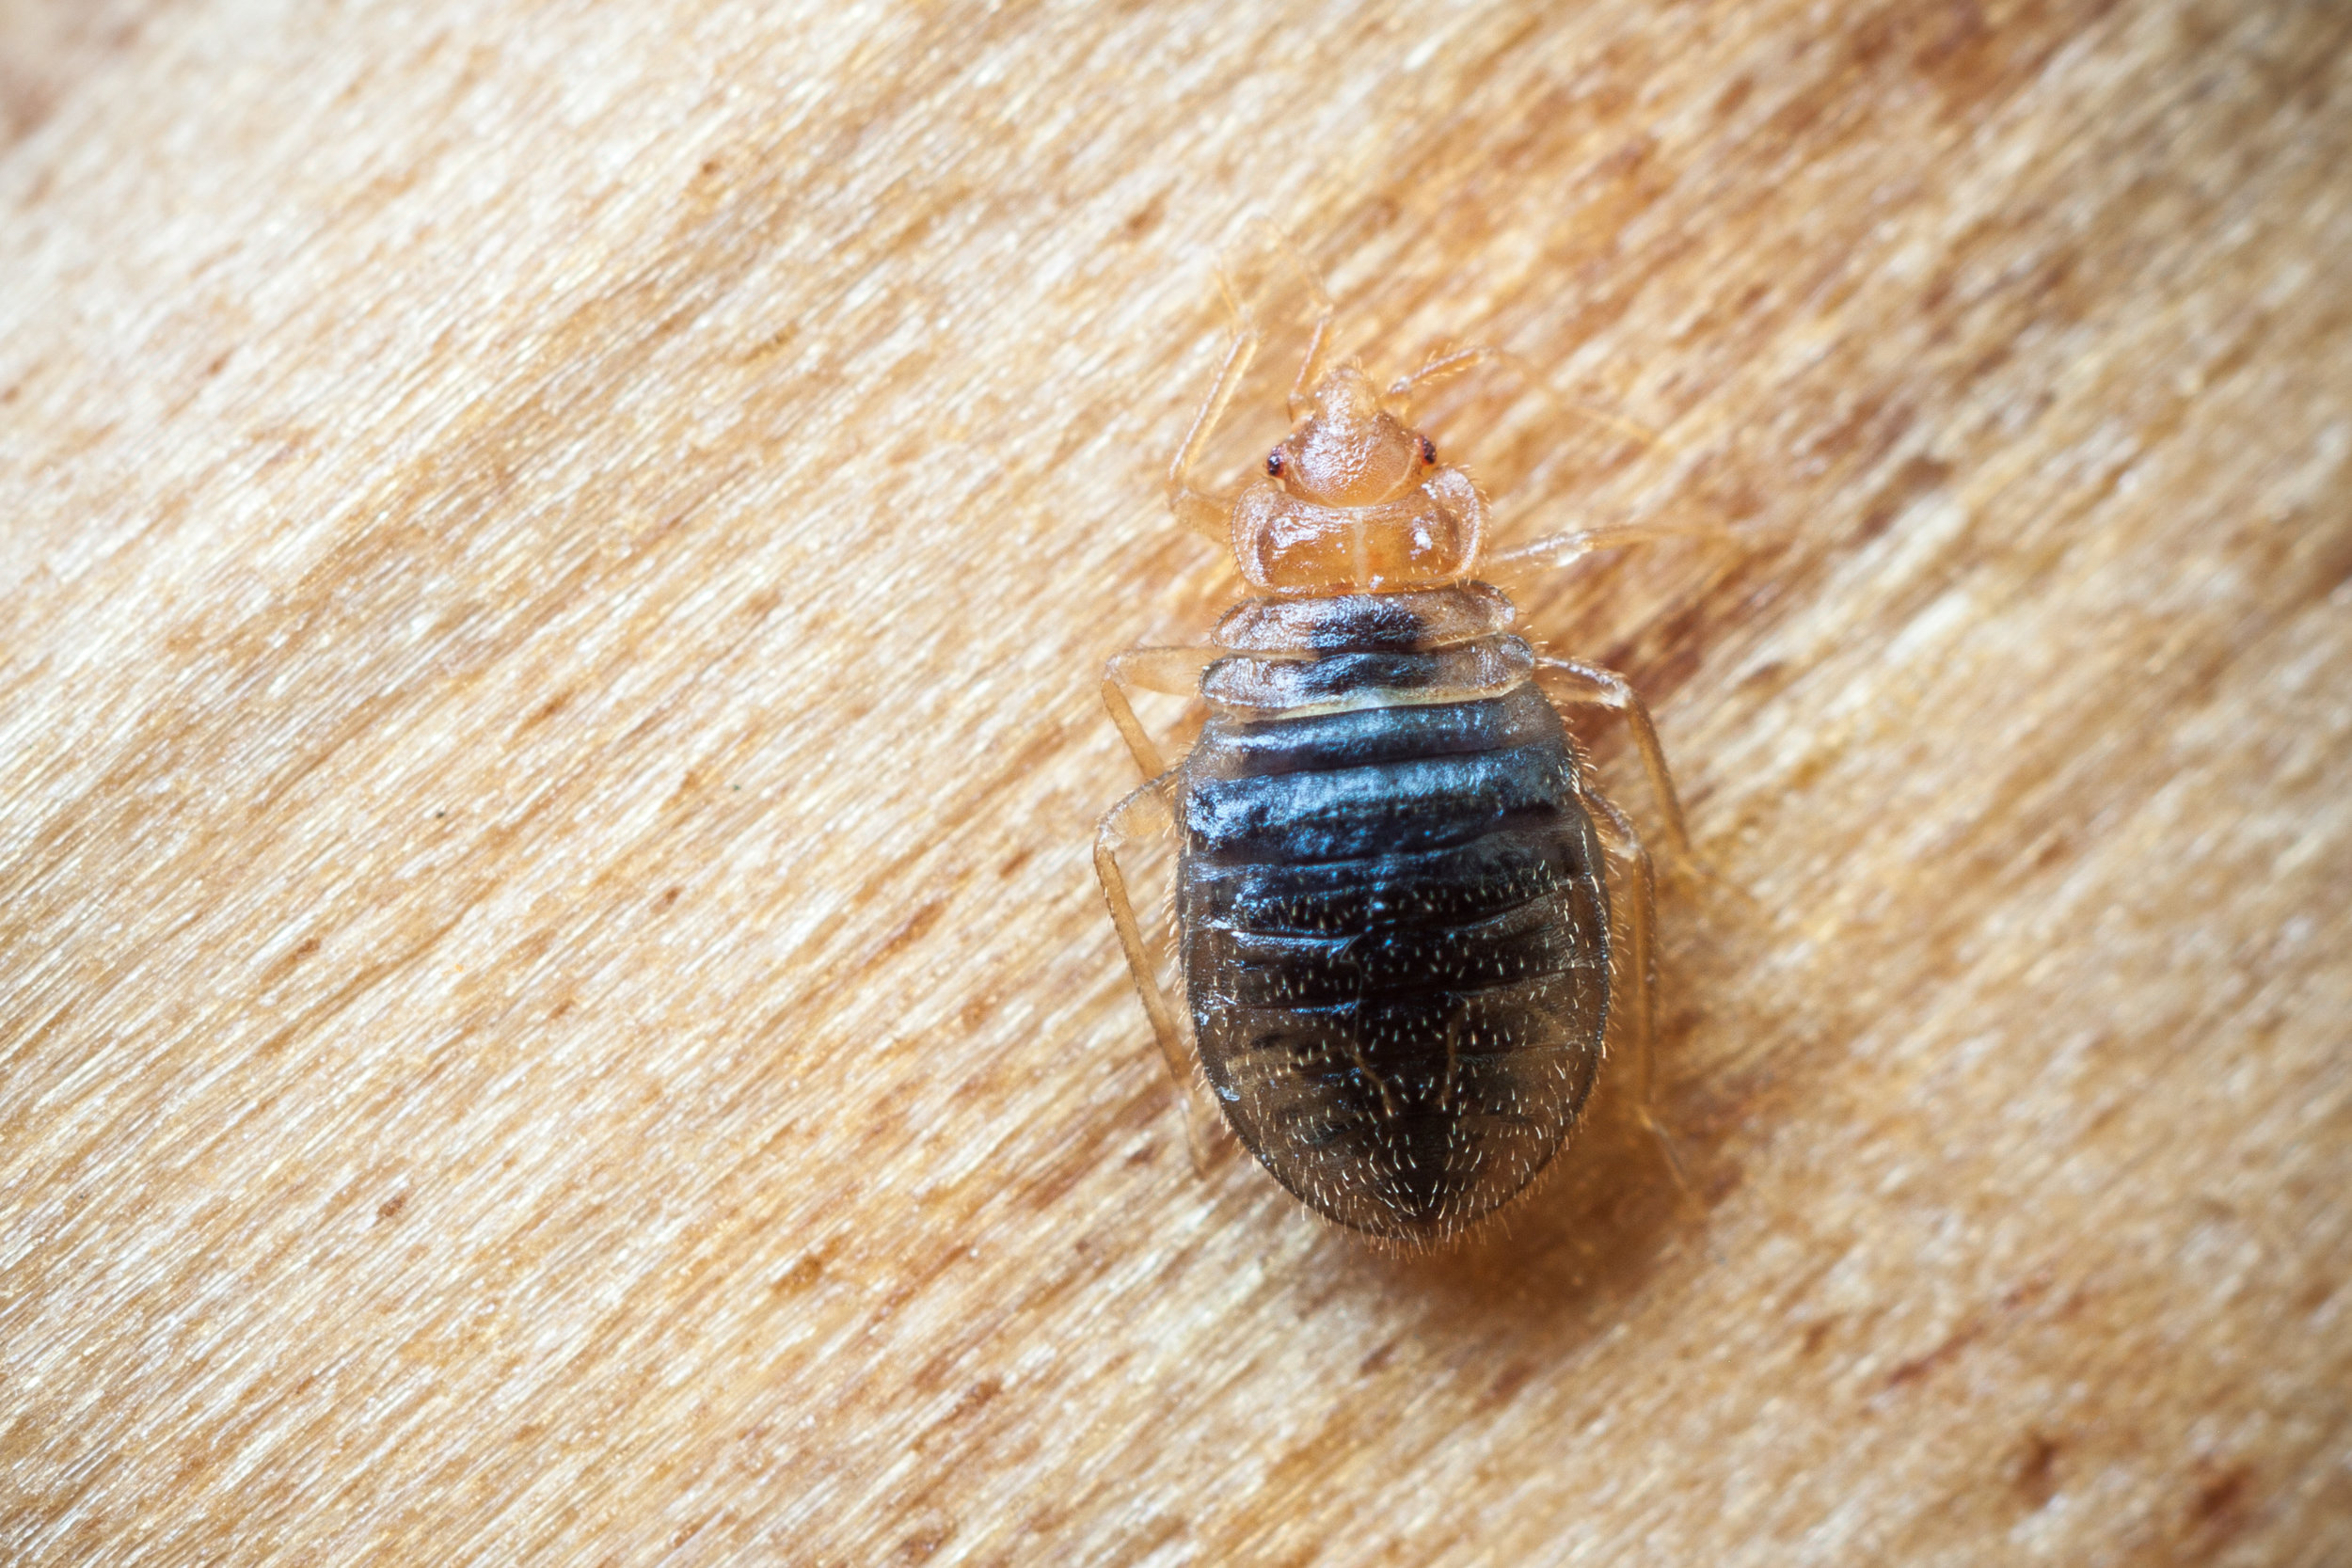 5 Signs of a Bed Bug Infestation in Your Home